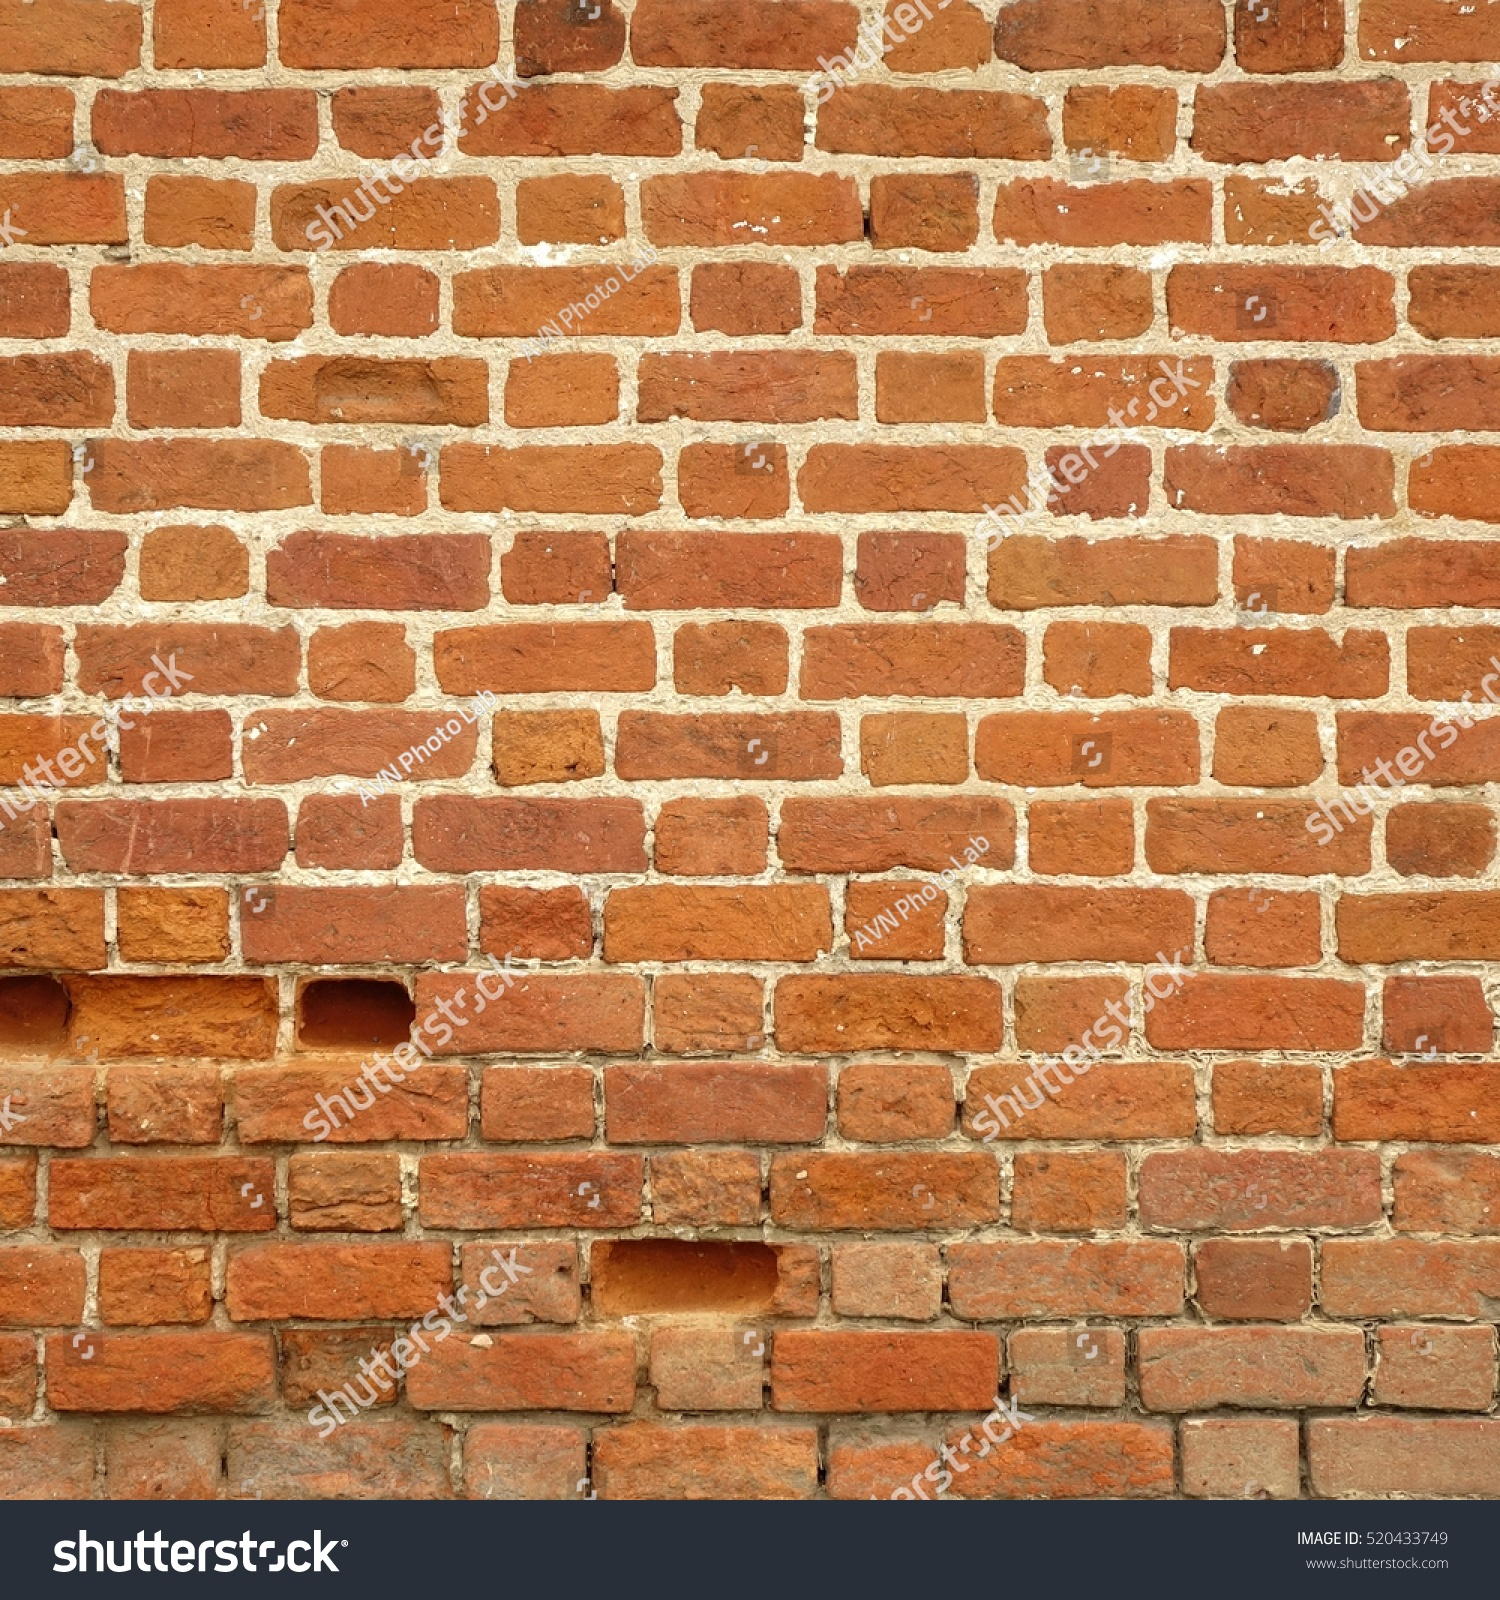 Distressed Brick Old Red Brick Wall Square Texture Stock Photo 520433749